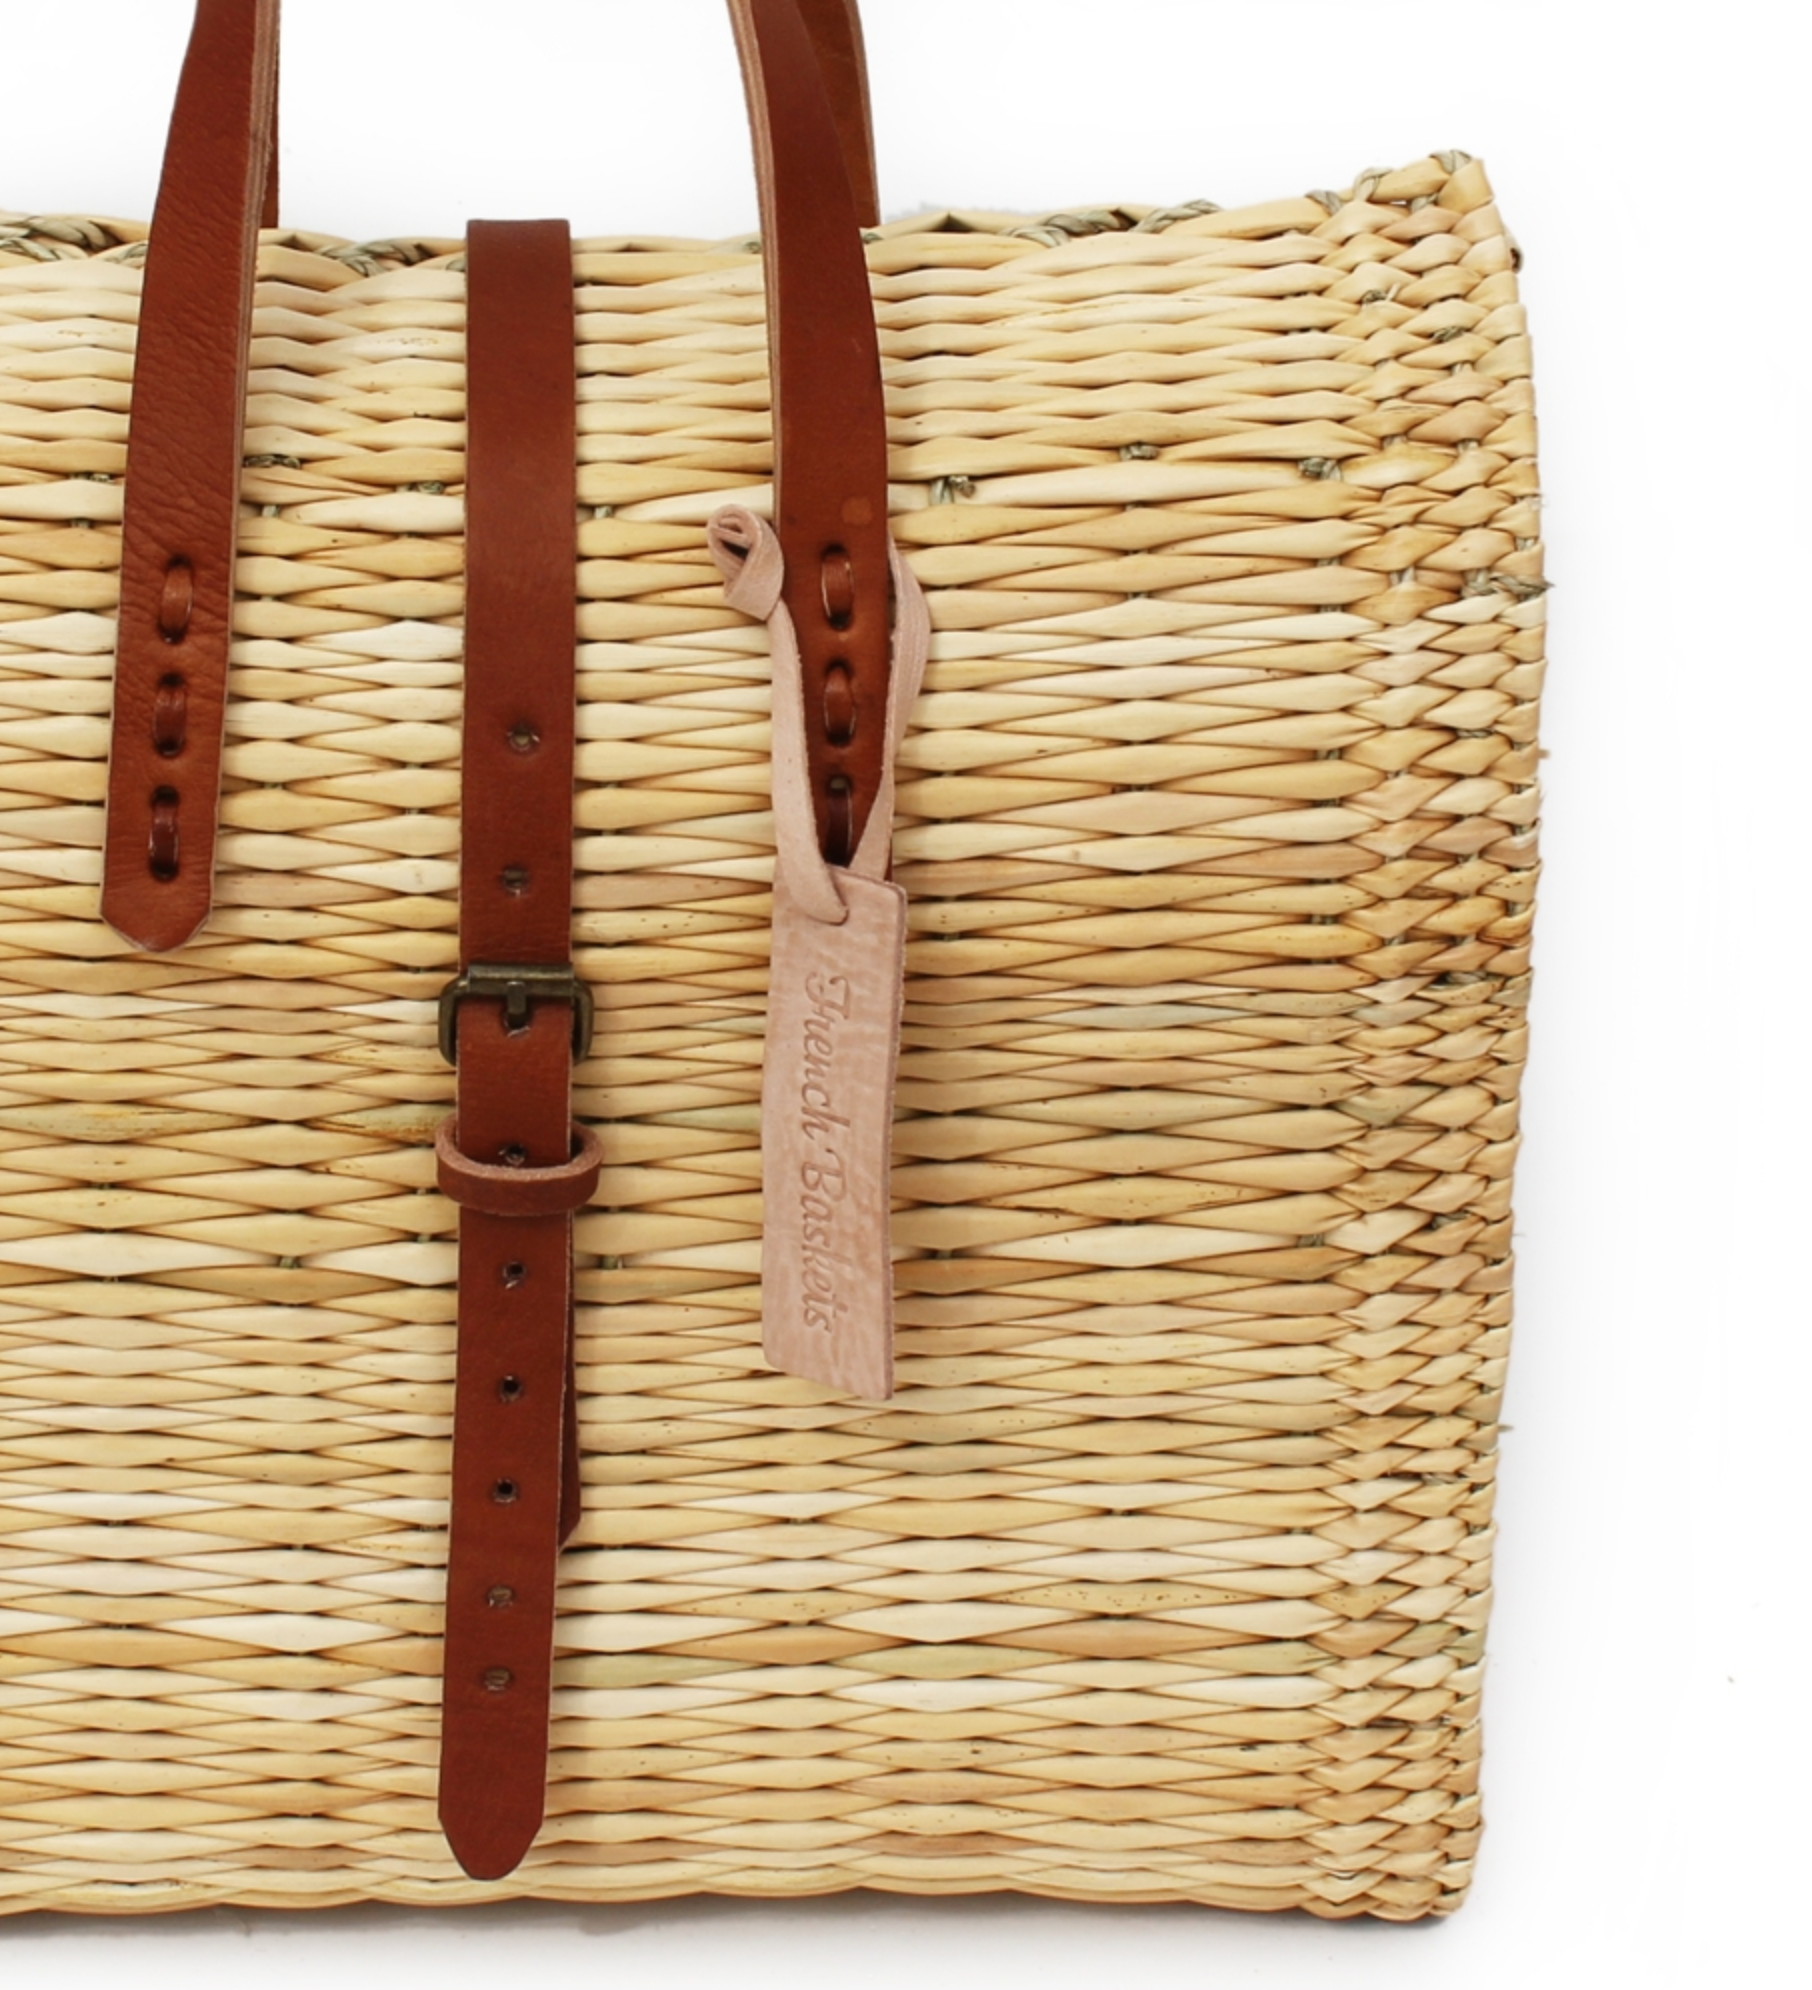 French Basket Medium Straw Suitcase -  Natural